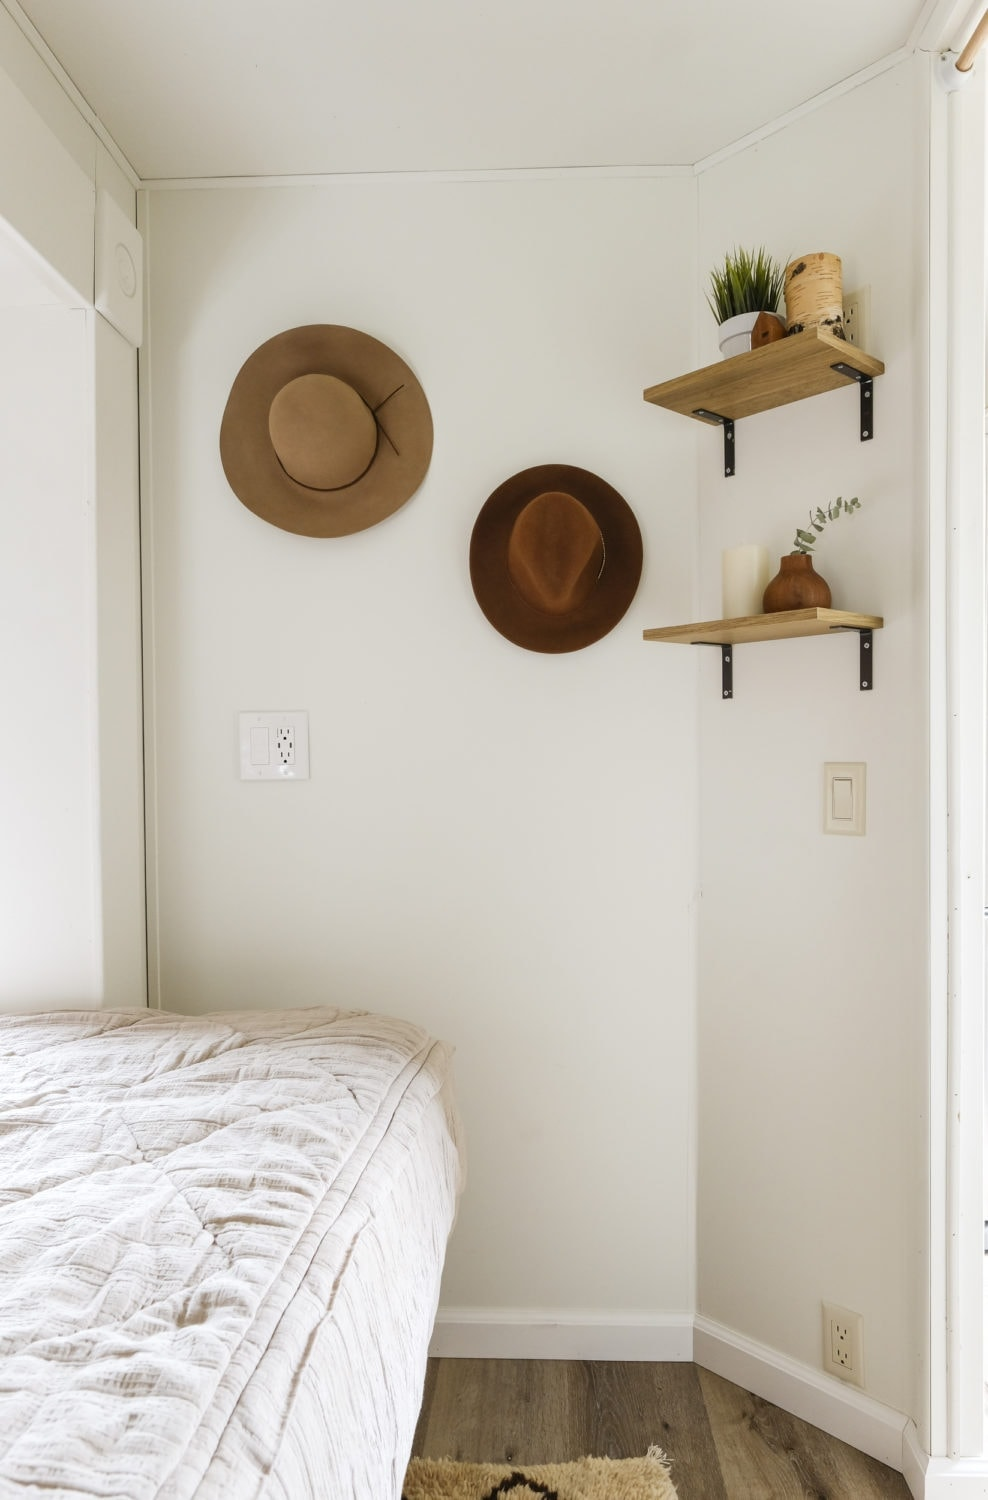 RV bedroom remodel with hats hanging on the wall and open shelving